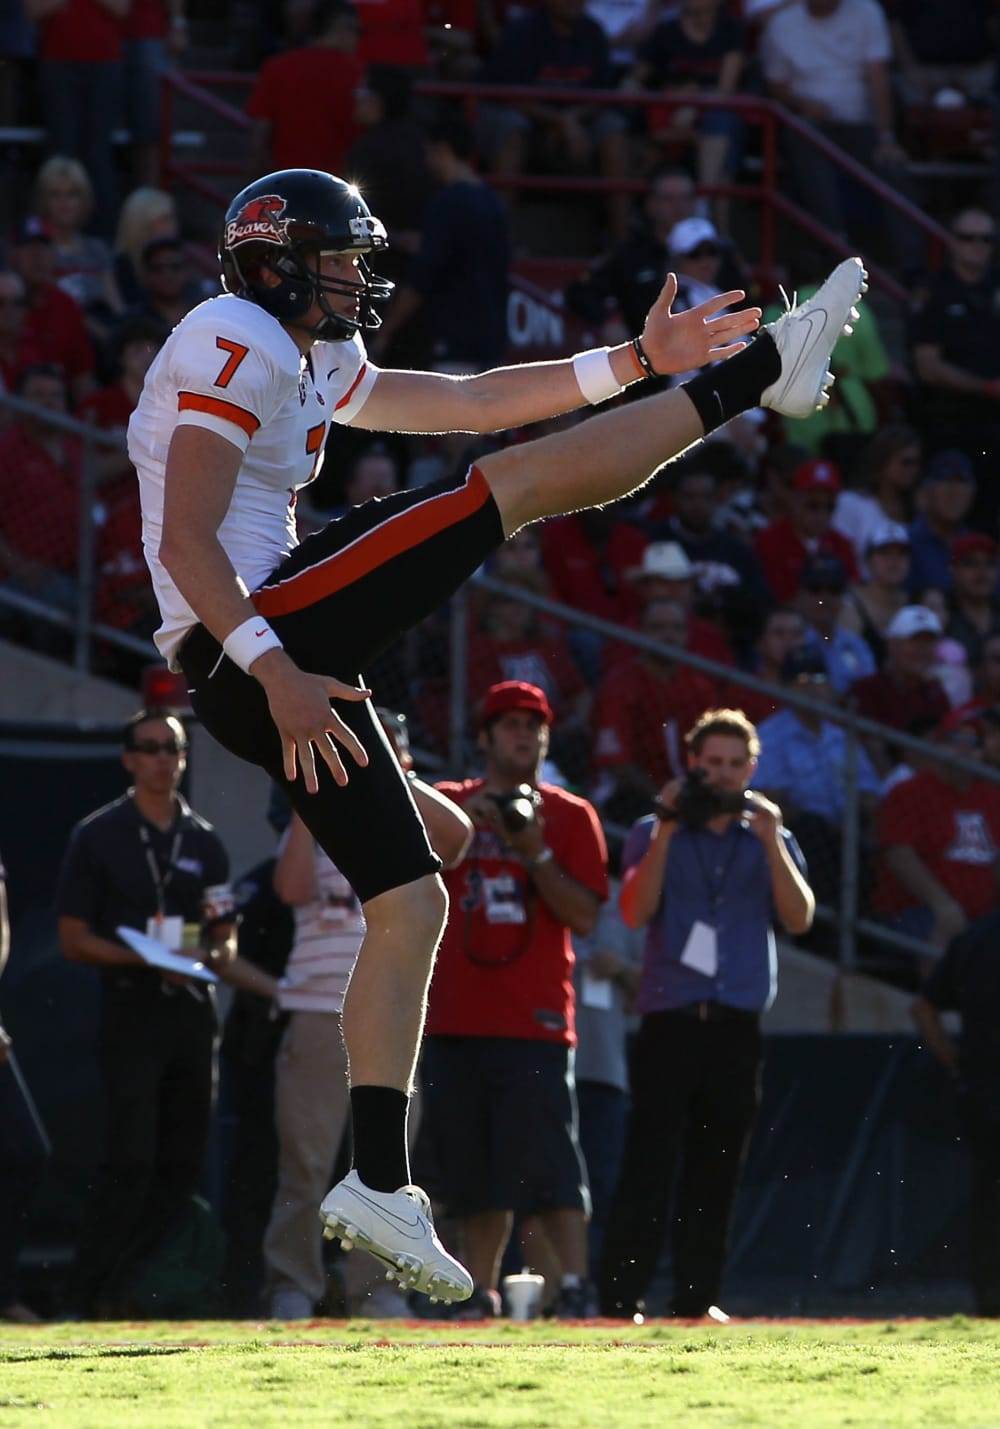 TUCSON, AZ - OCTOBER 09: Punter Johnny Hekker #7 of the Oregon State Beavers kicks the football during the college football game against the Arizona Wildcats at Arizona Stadium on October 9, 2010 in Tucson, Arizona. The Beavers defeated the Wildcats 29-27. (Photo by Christian Petersen/Getty Images)